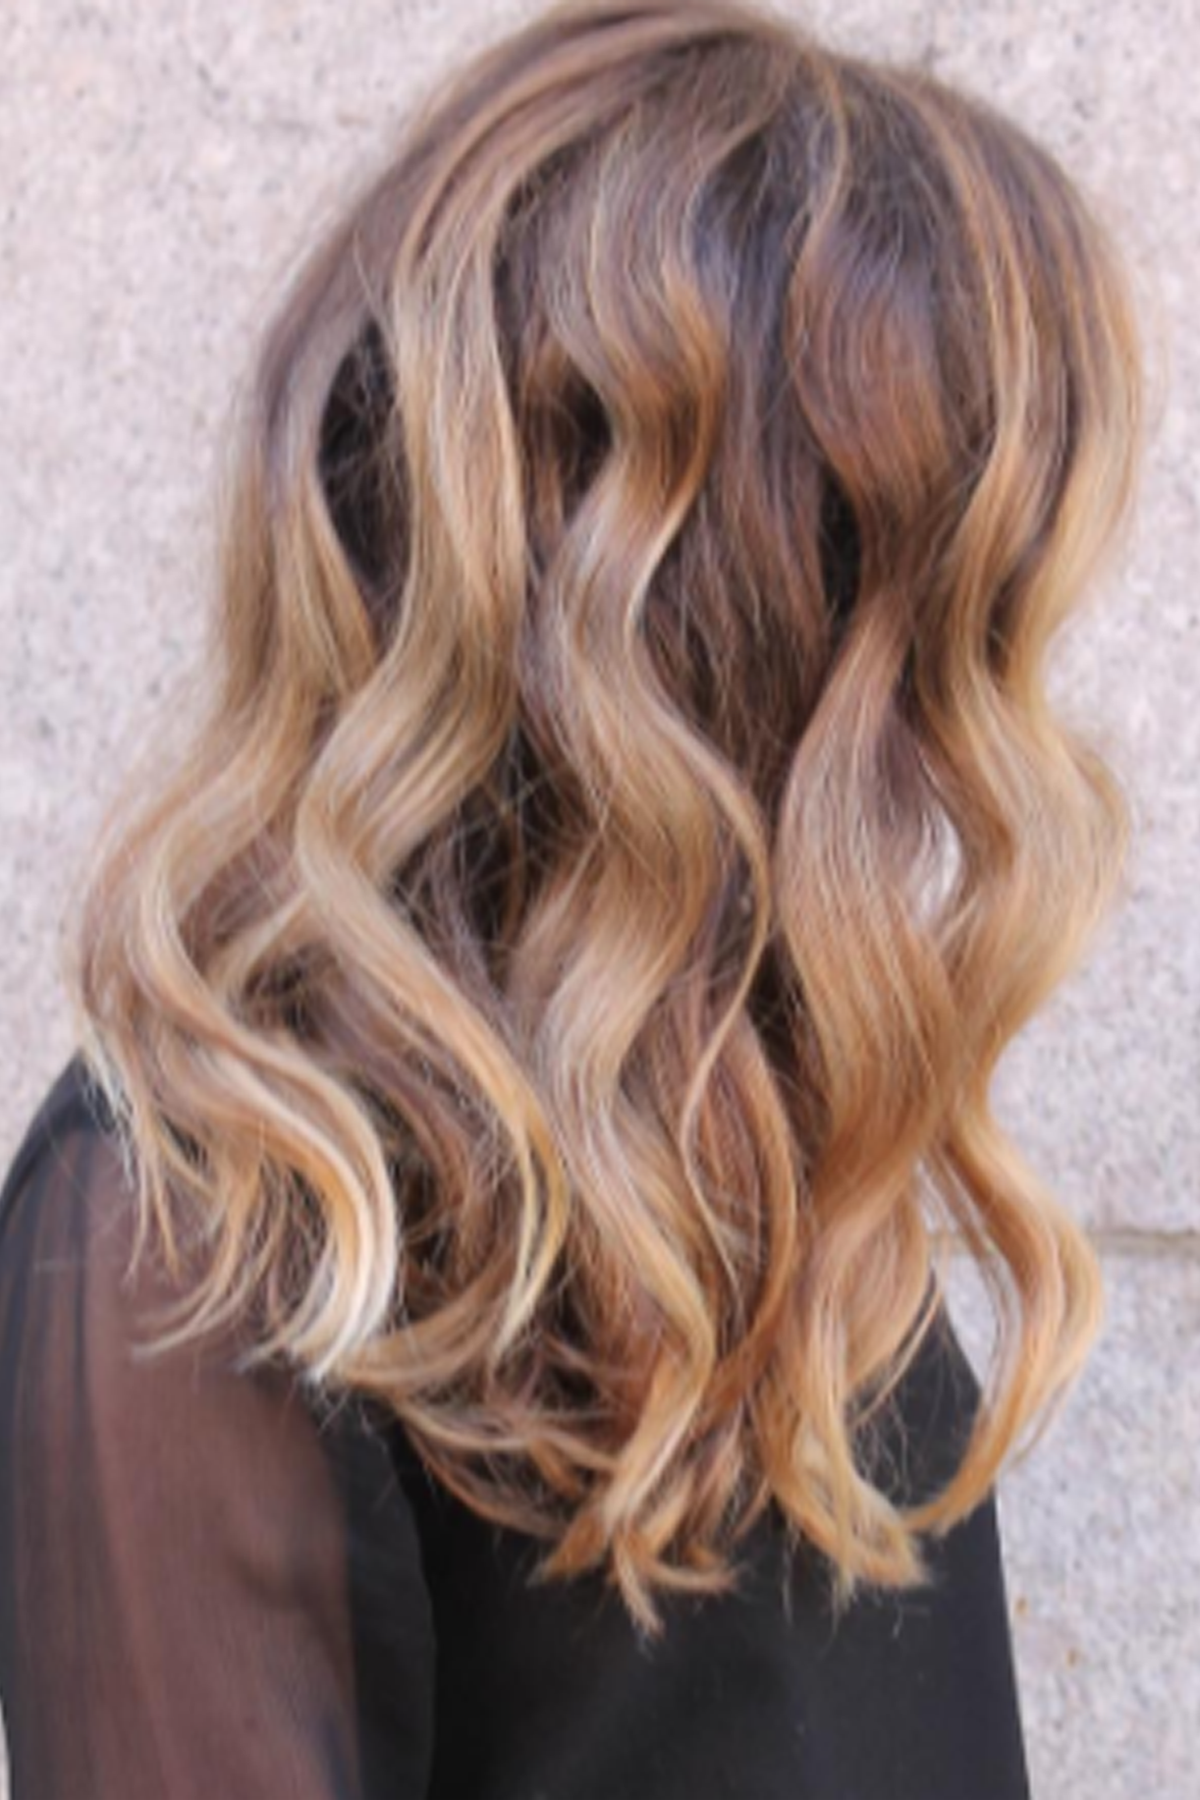 Gorgeous Hair Colors That Will Be Huge Next Year | New ...